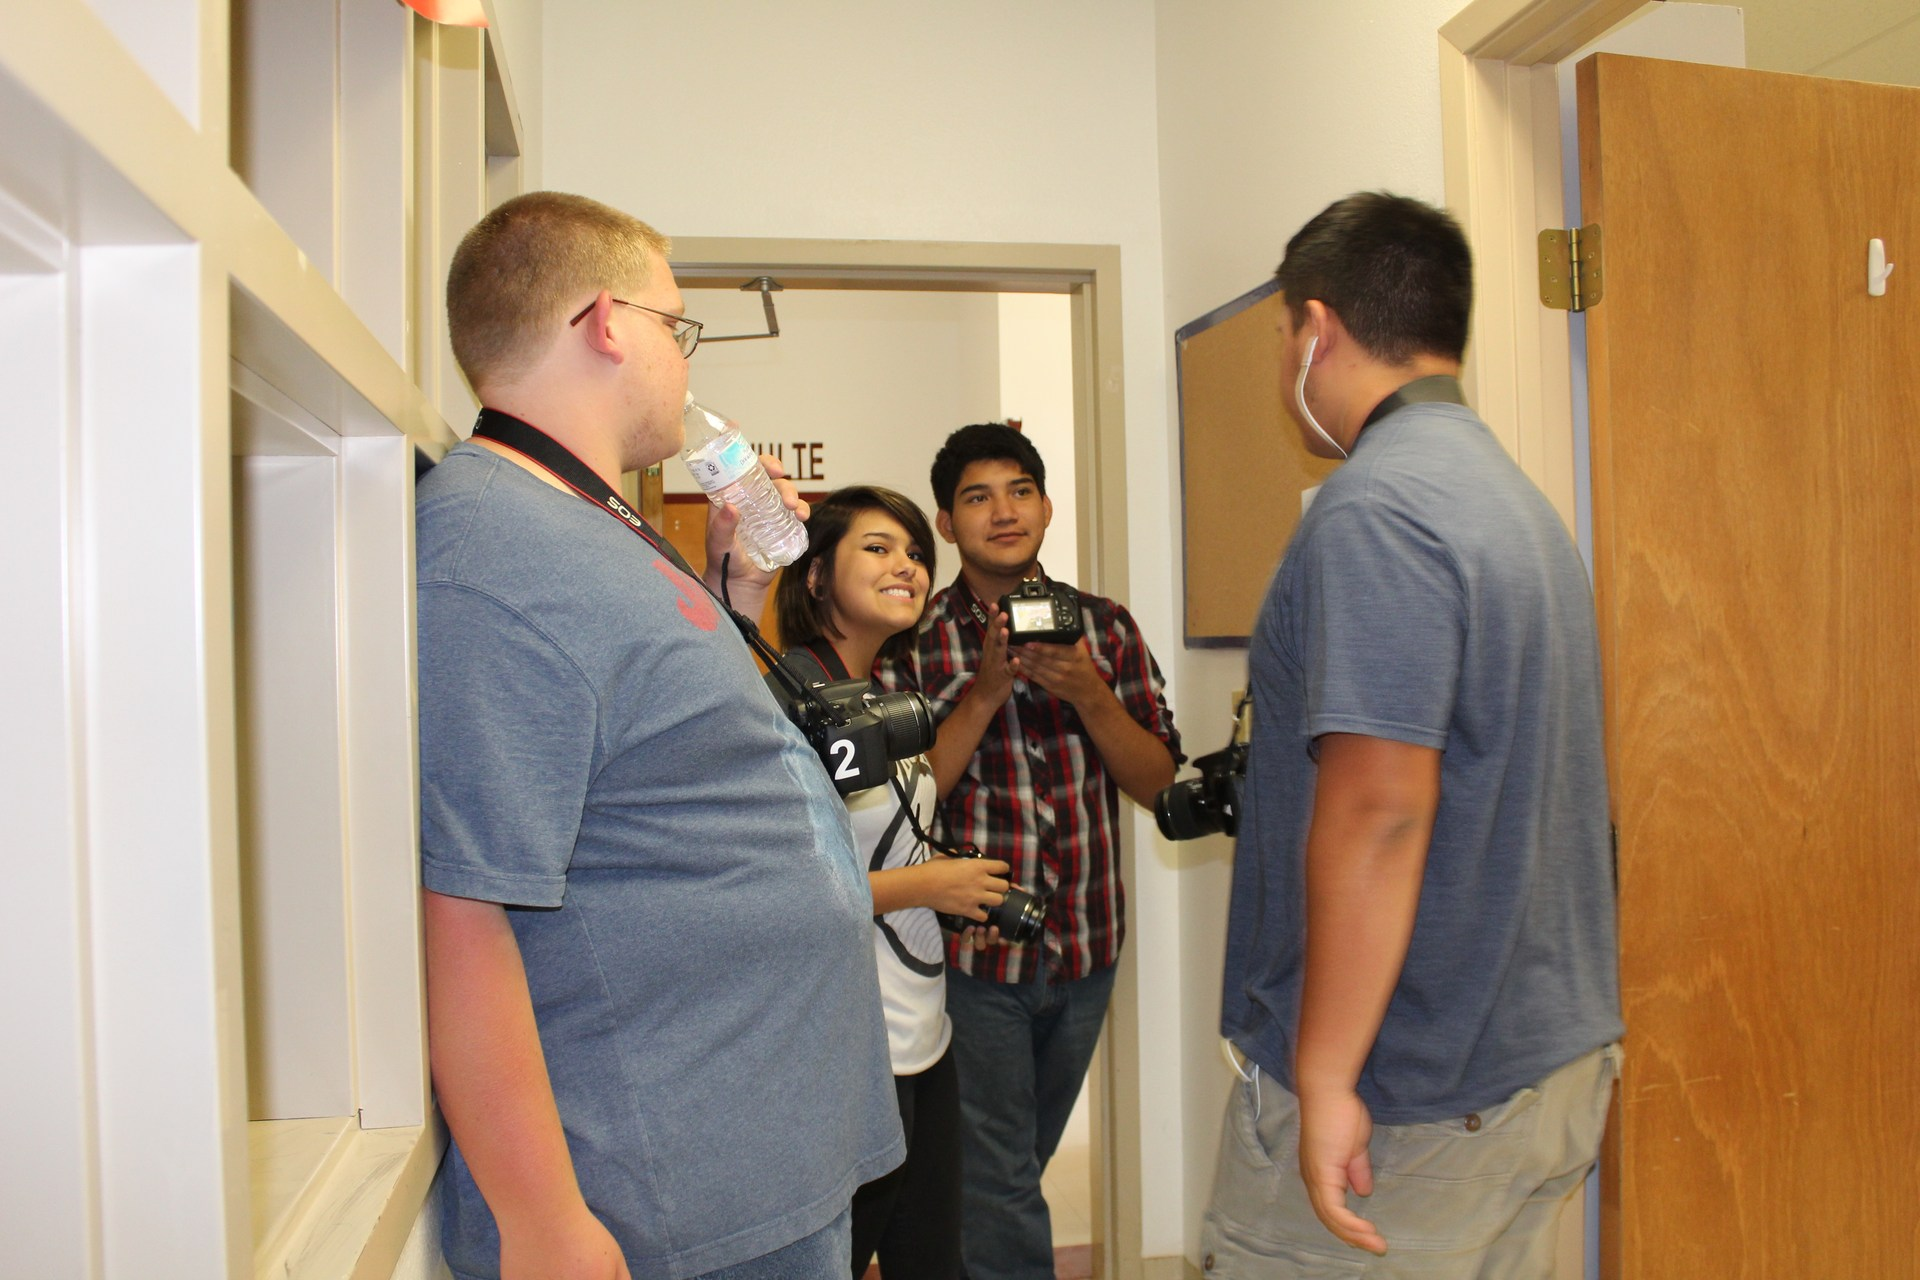 Students taking photos in hall